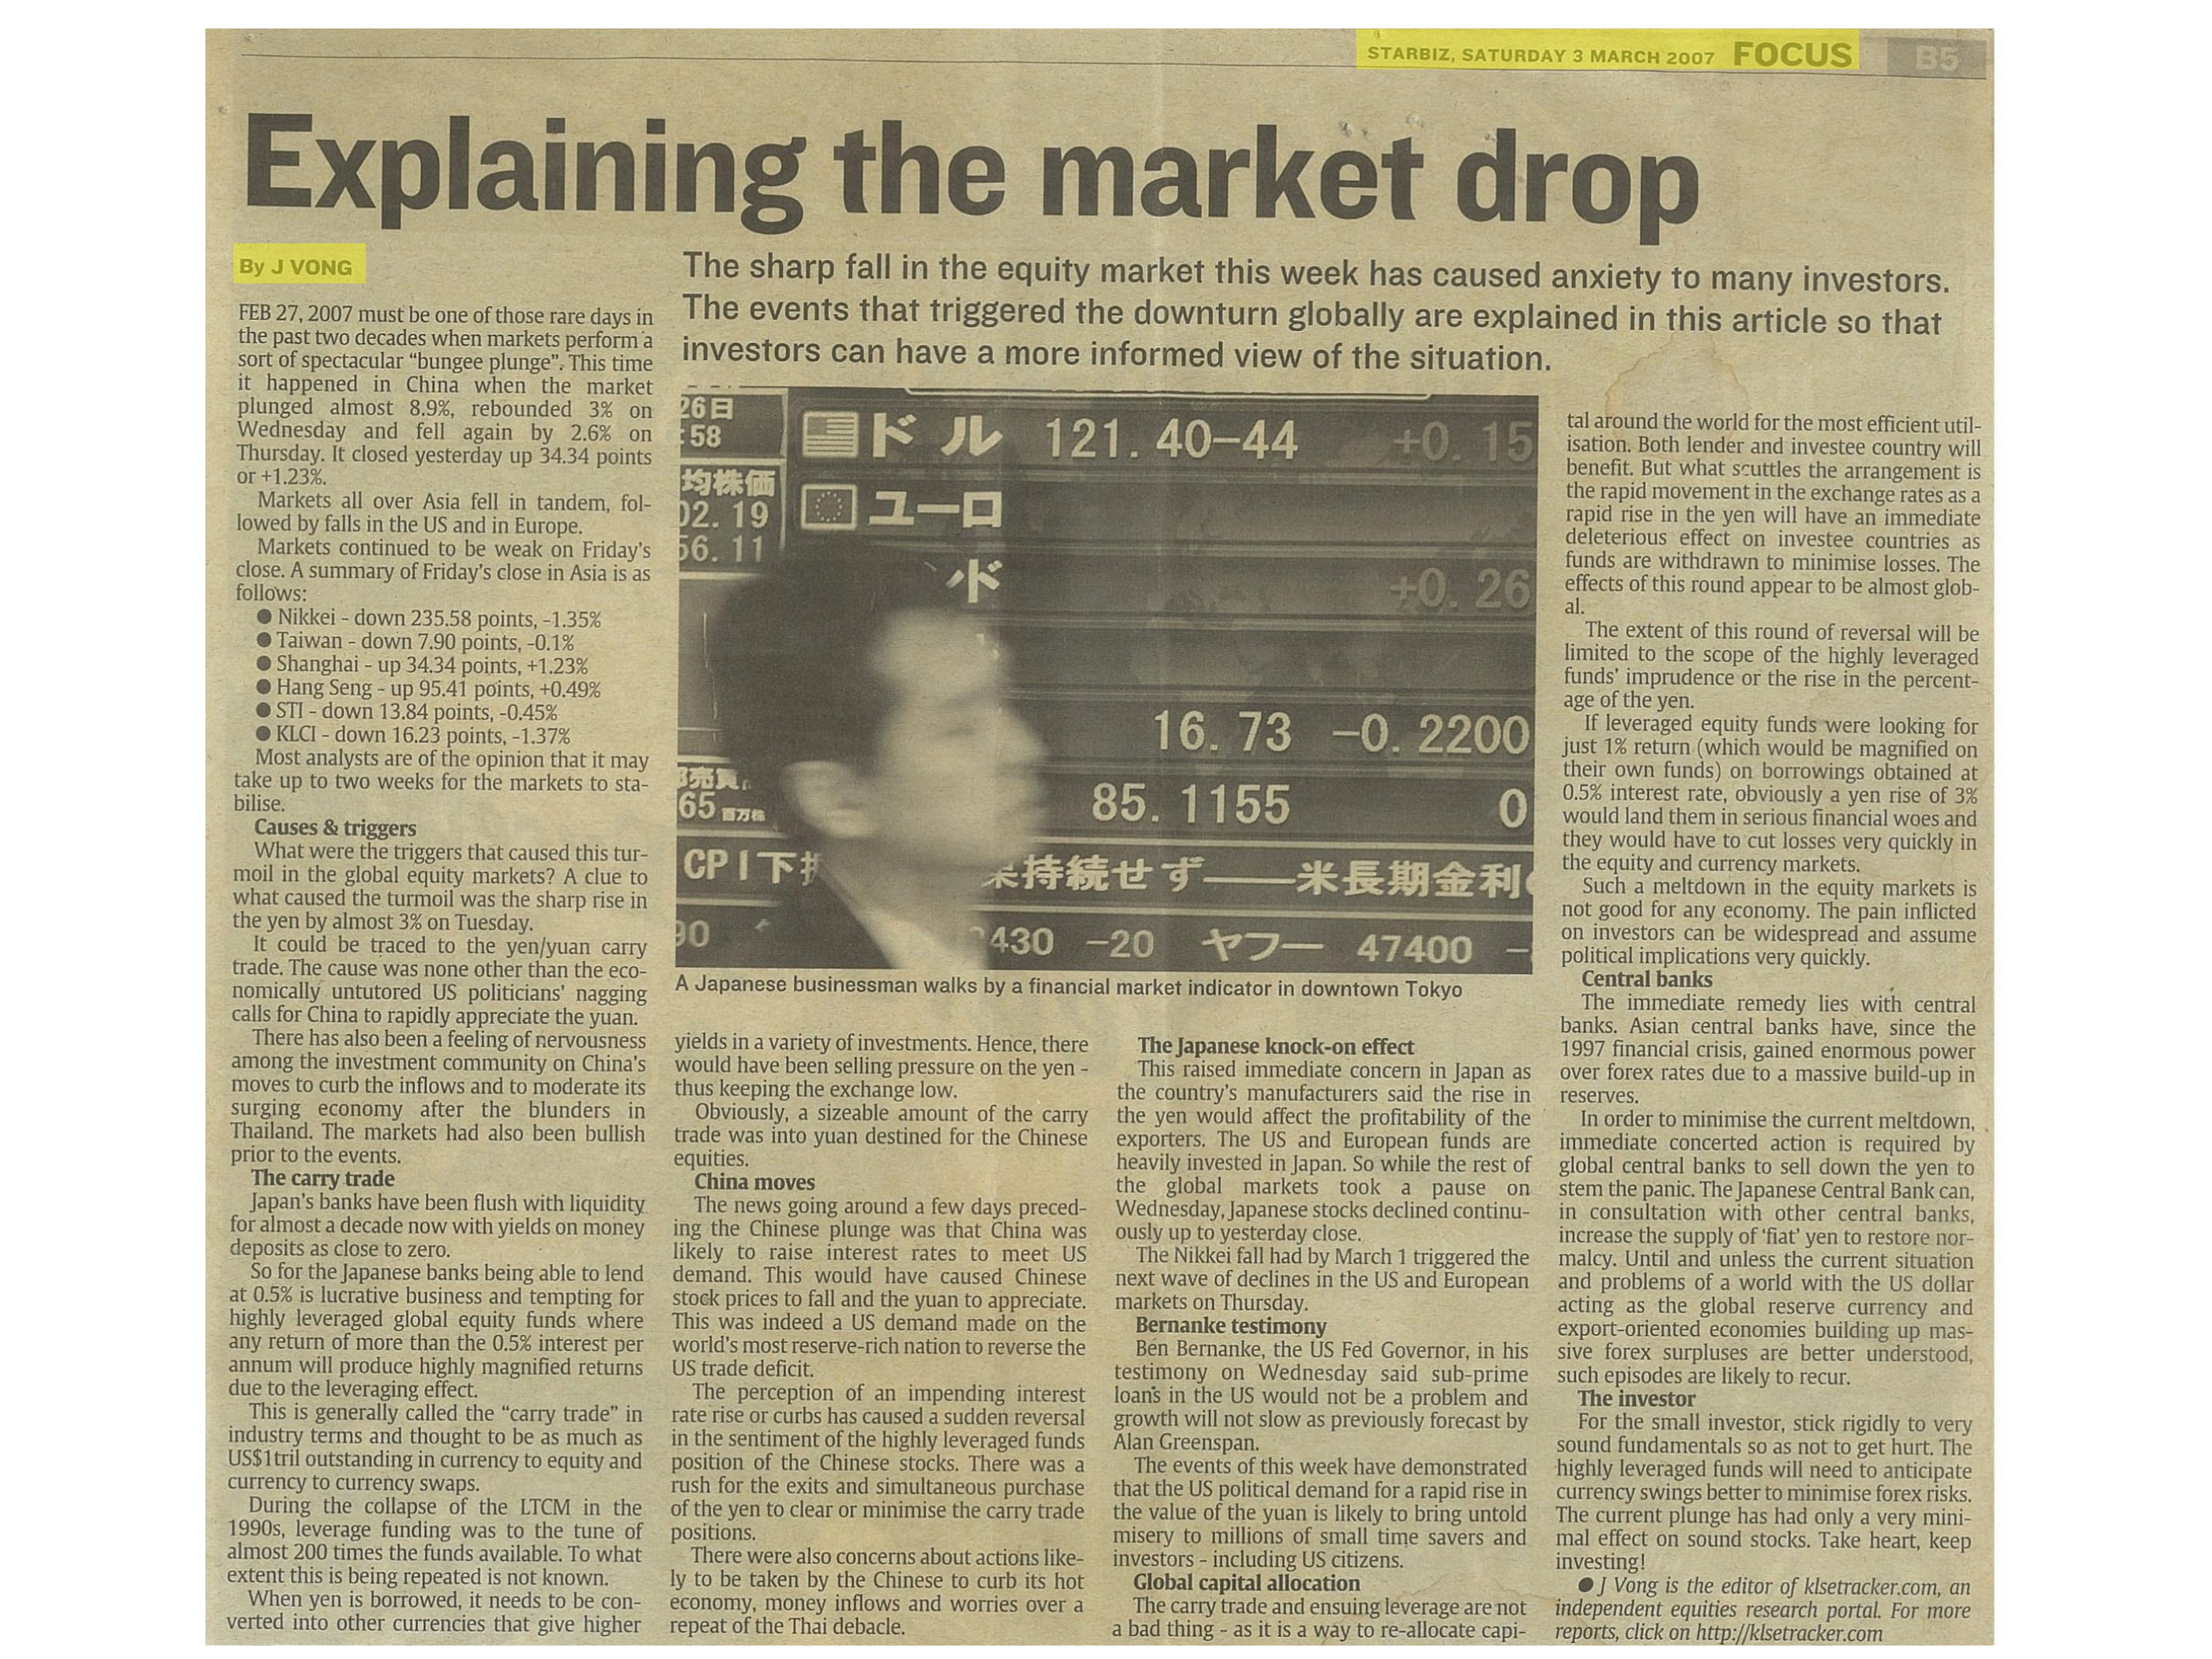 Media Coverage 2007 03 03 Explaining the Market Drop 1